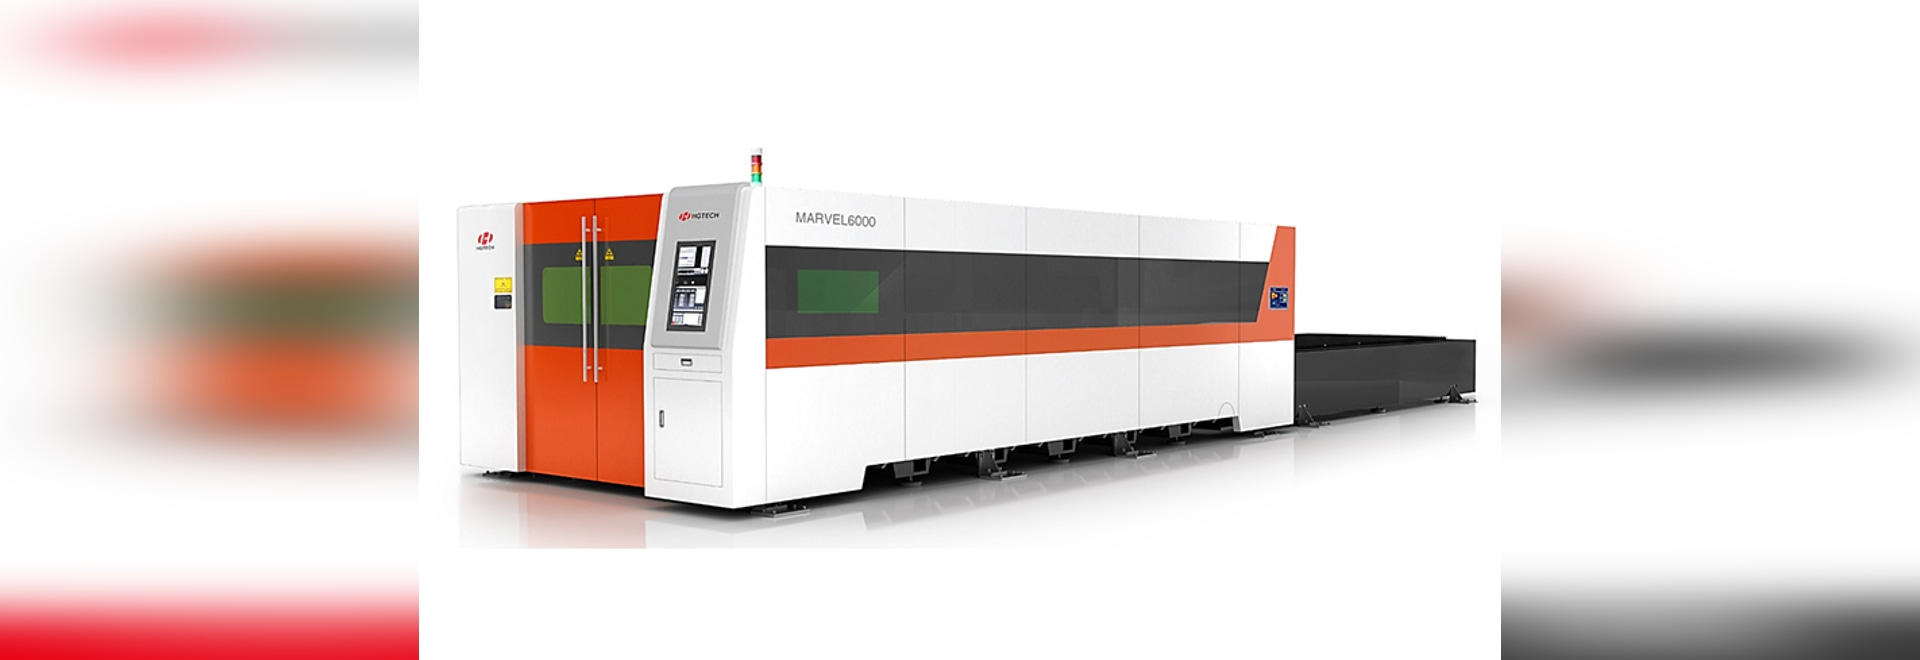 MARVEL6000 fiber laser cutting machine--to lead the new era of high-power fiber laser cutting